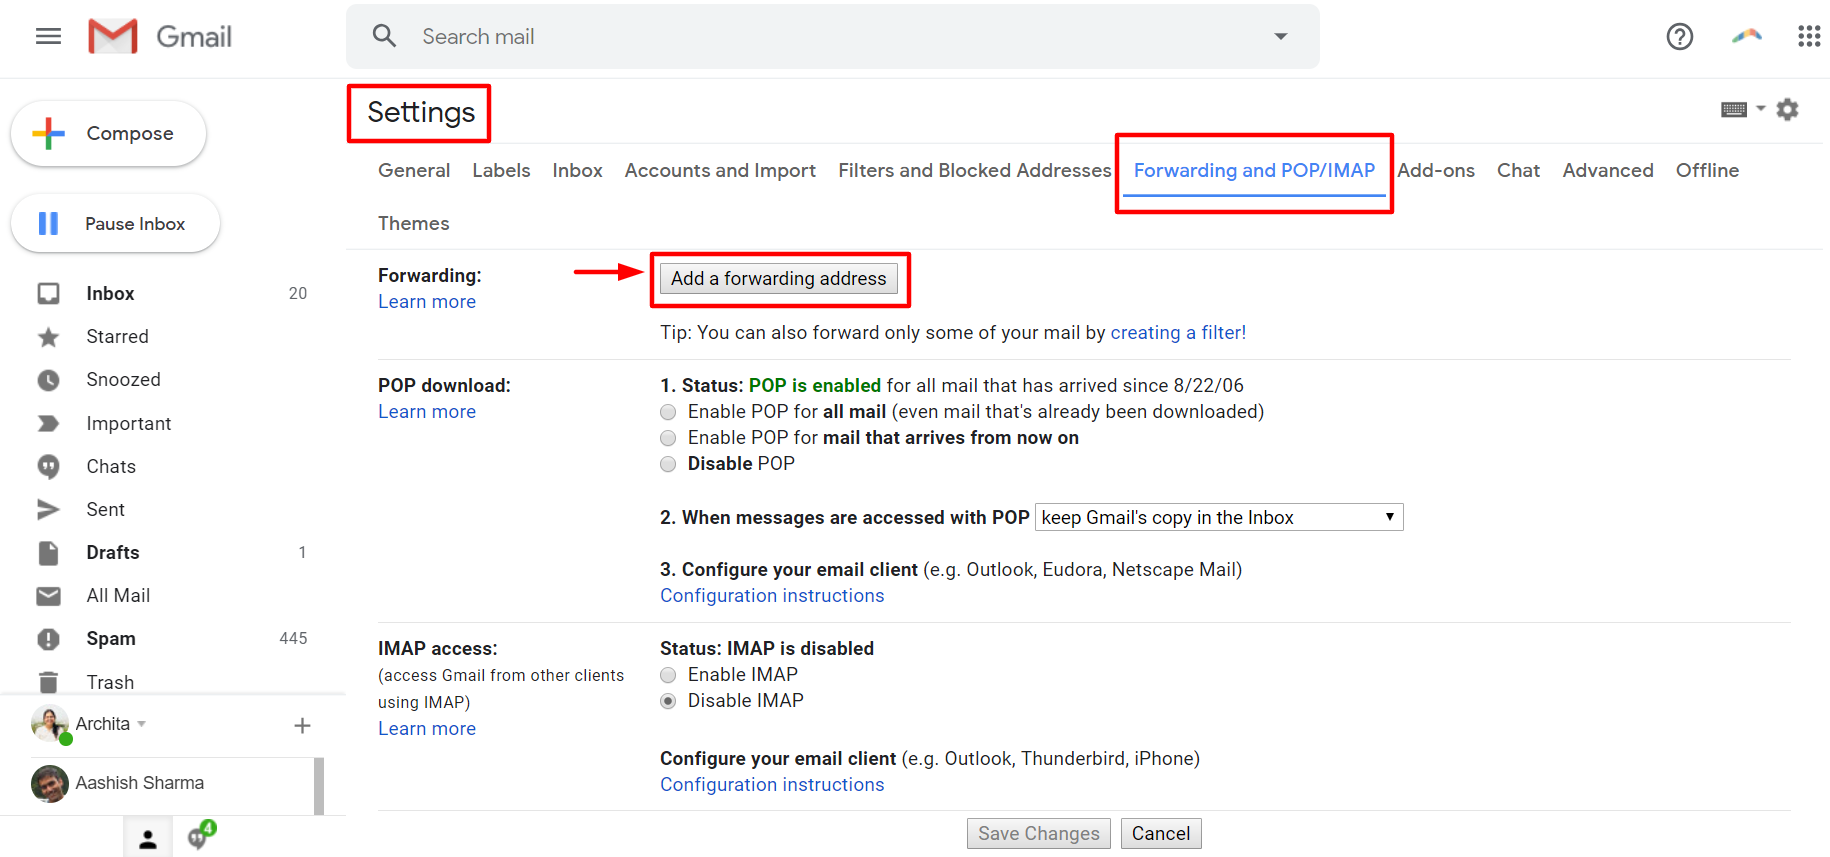 20+ Gmail Tips and Tricks to Supercharge your Inbox